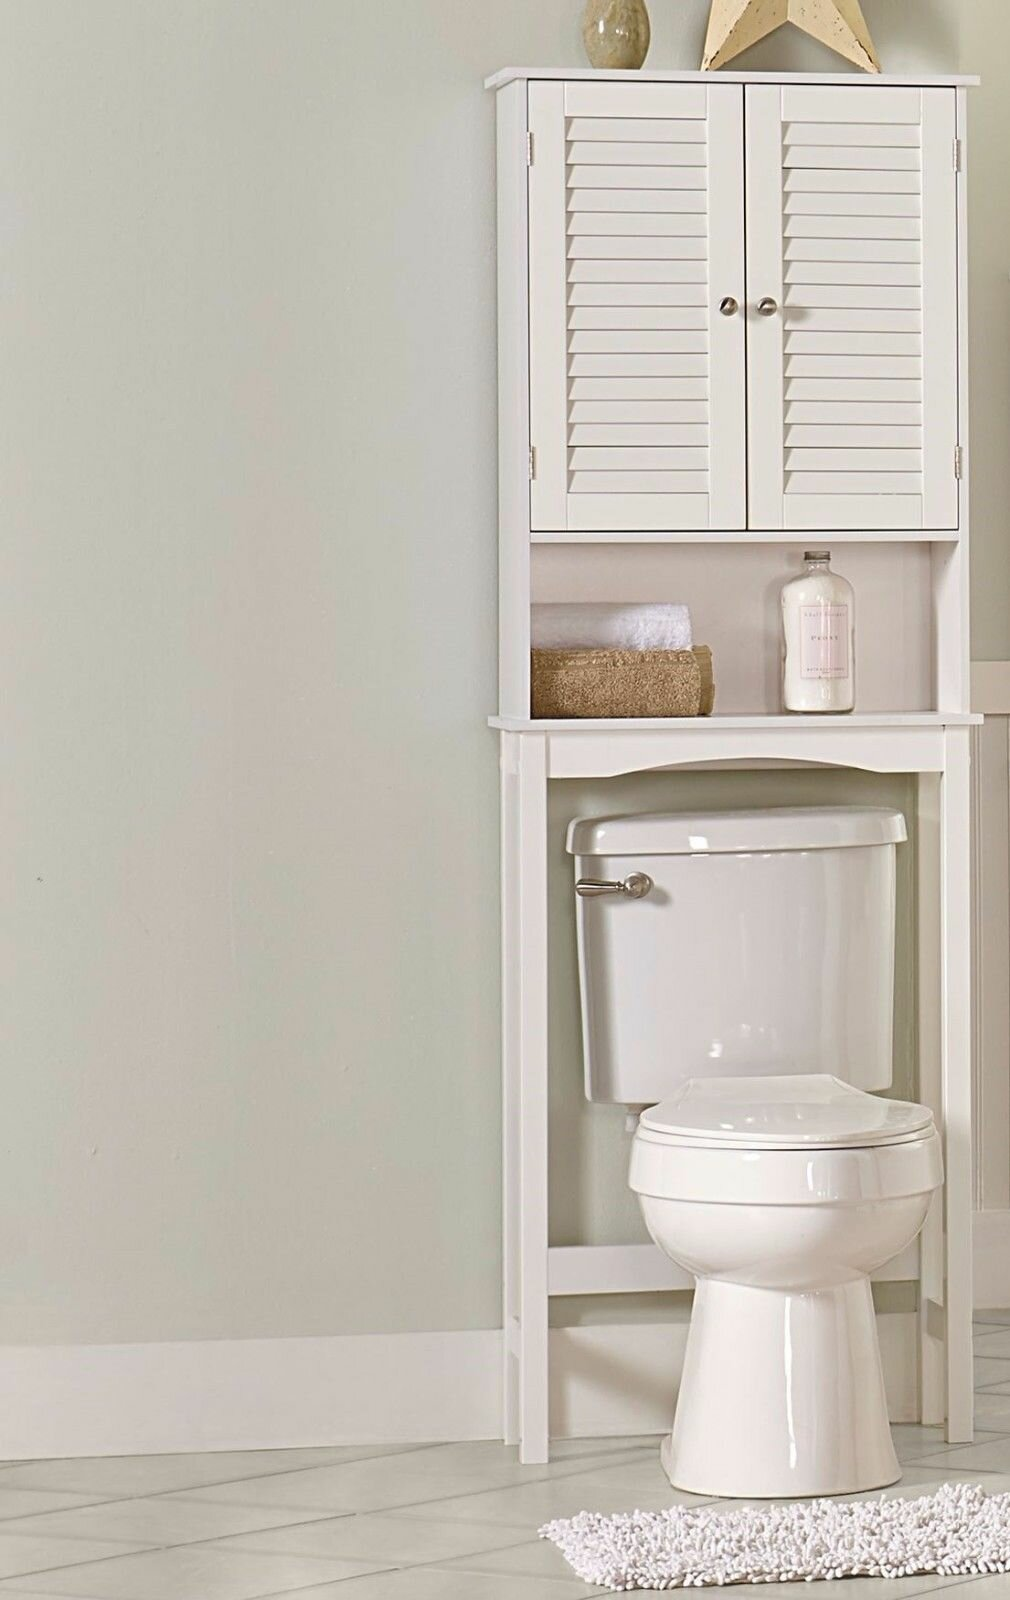 Oak Bathroom Space Saver Over Toilet Interesting Zenith Products Wood Spacesaver Bath Storage